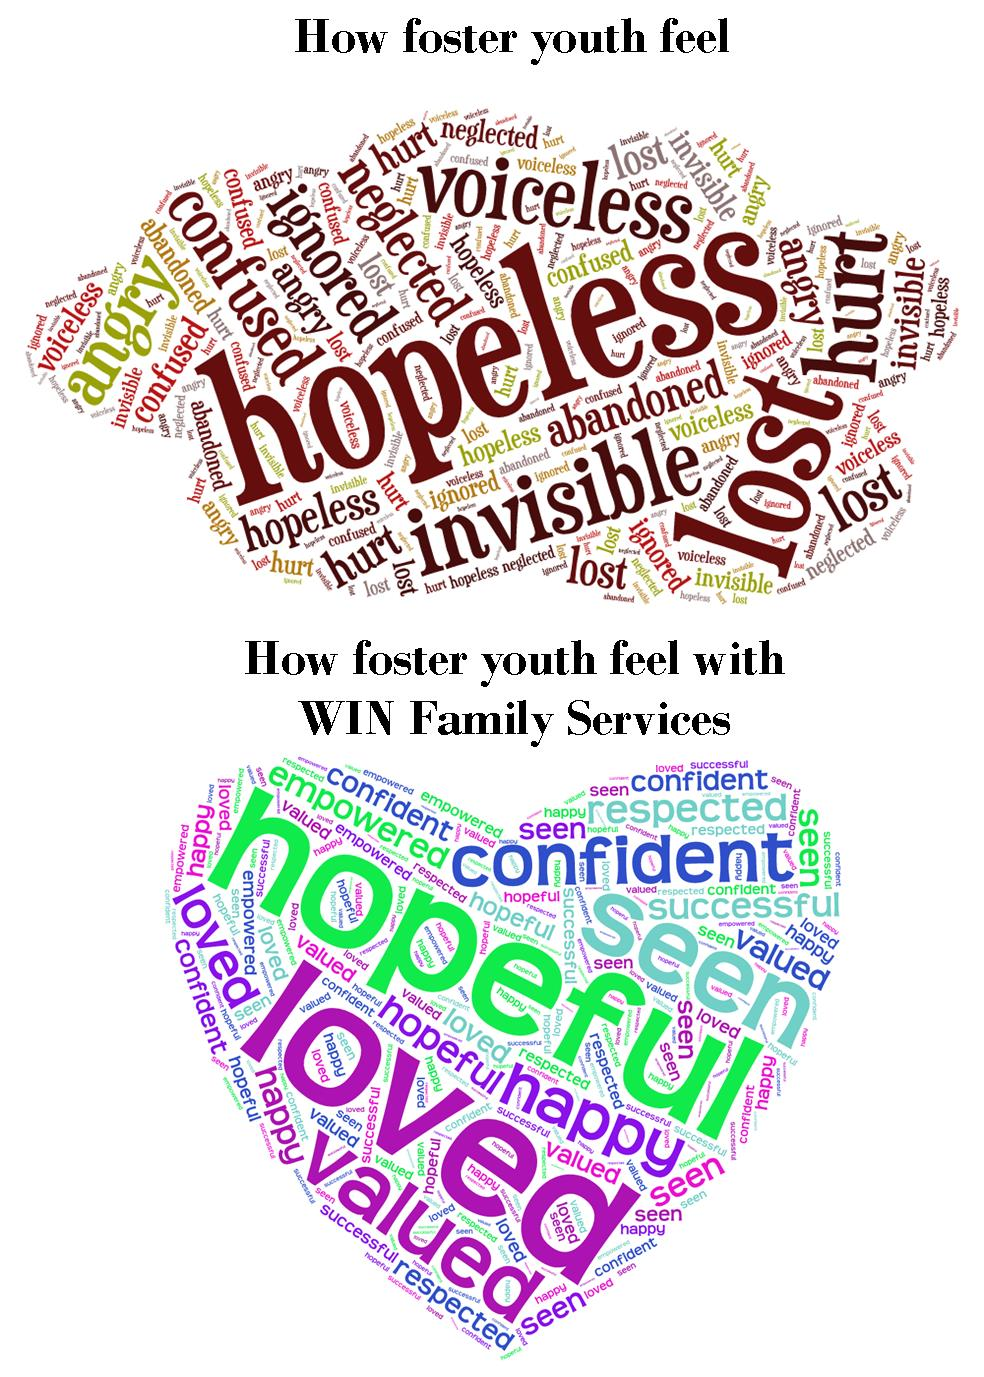 Foster youth feeling word clouds